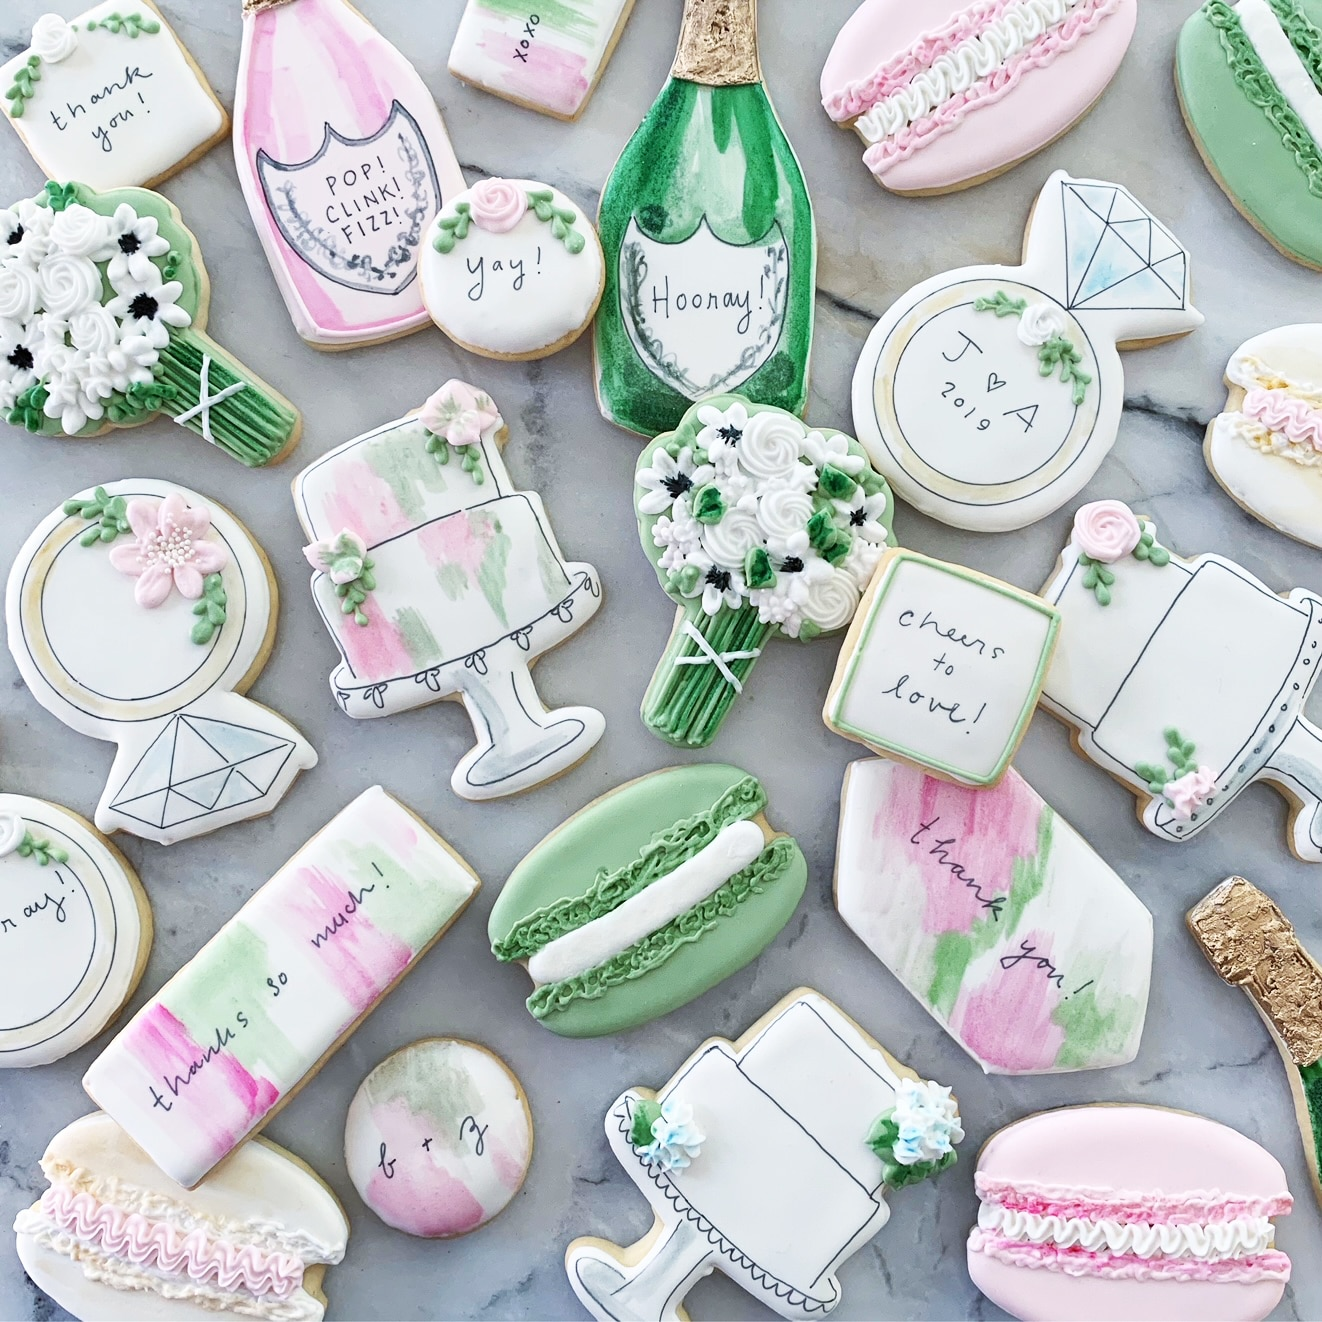 painted-wedding-cookie-mix-whipped-bakeshop